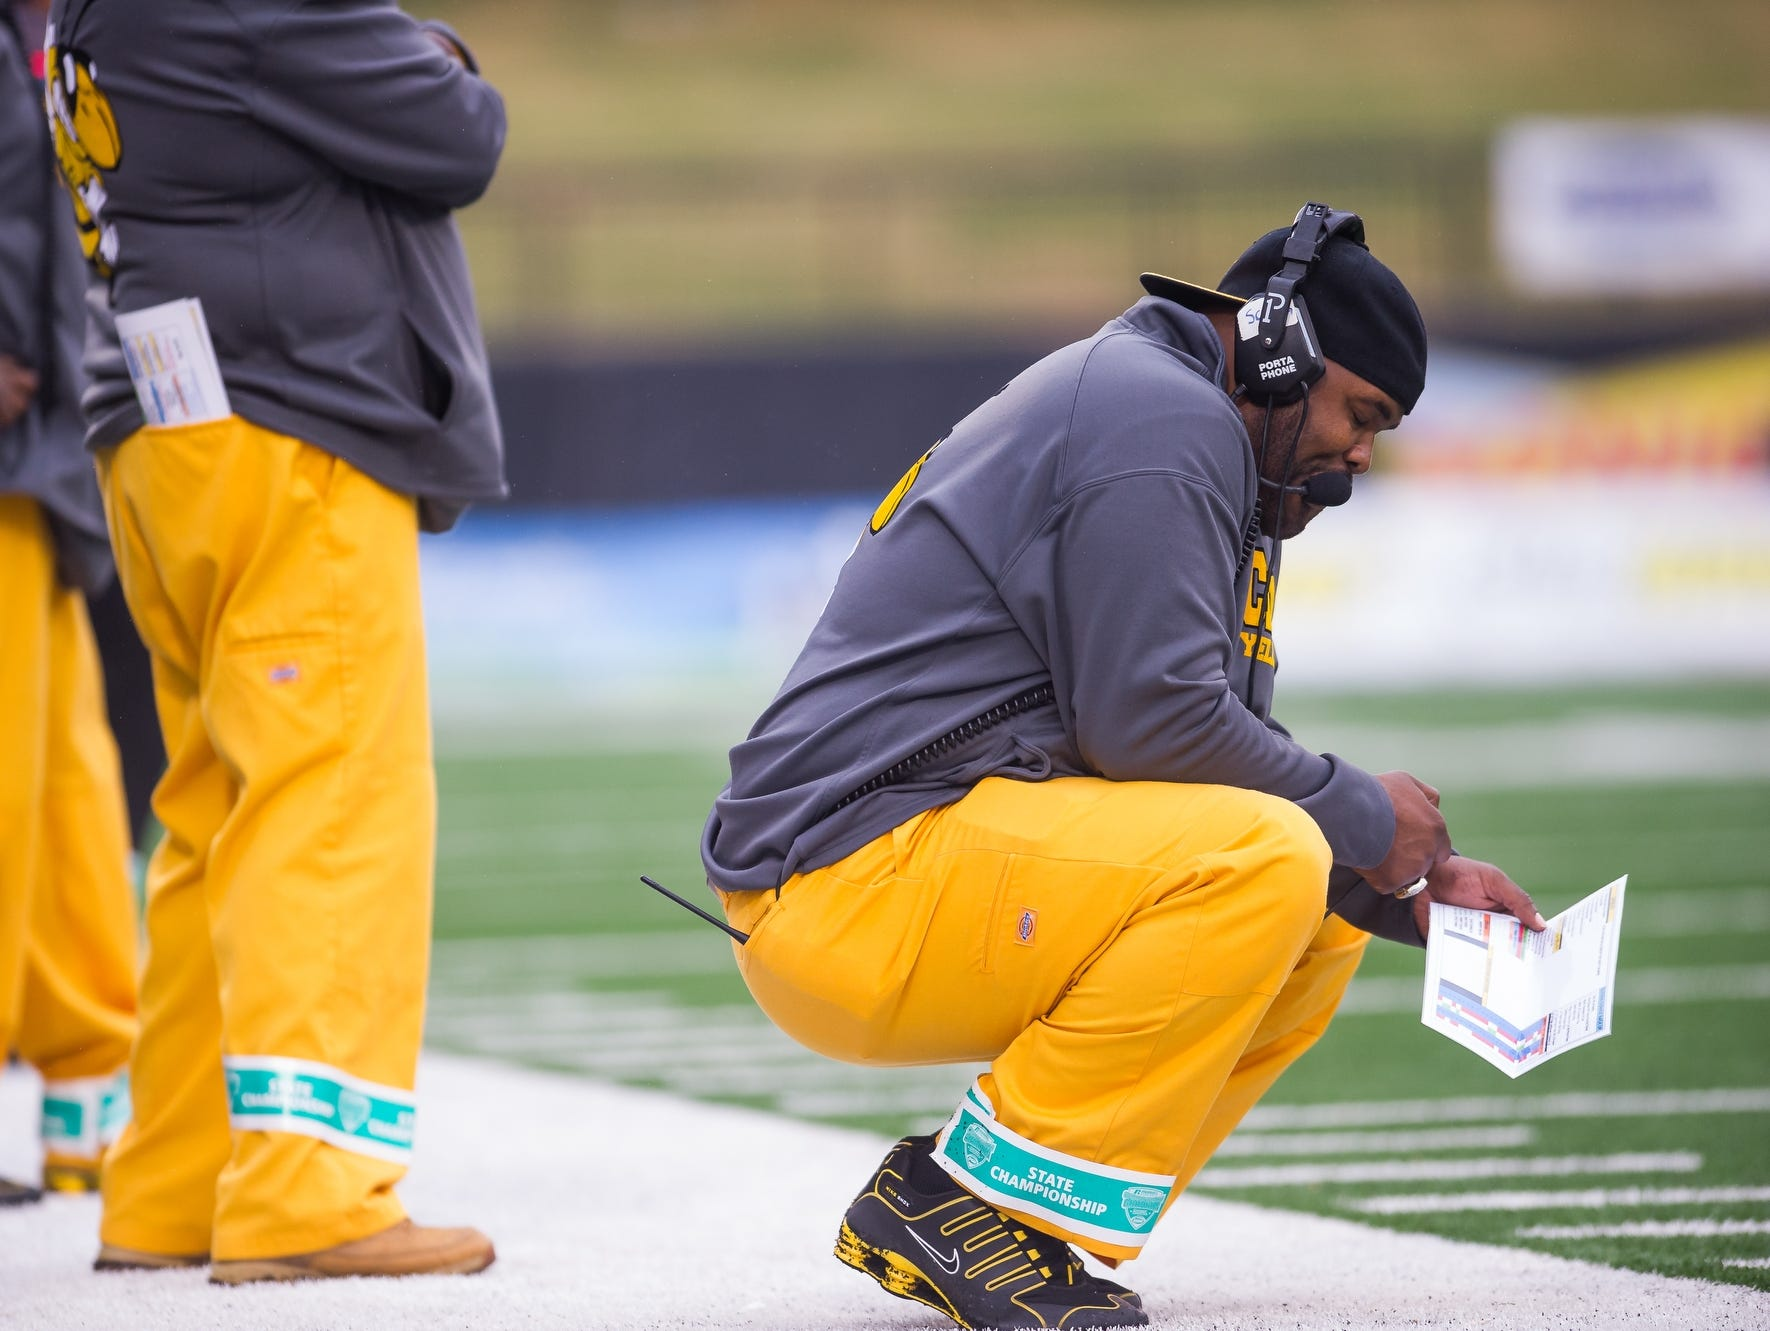 Central High School coach Tyrran Scroggins squats on his sideline during the Yellow Jackets game against Belfry during the KHSAA Commonwealth Gridiron Bowl at Western Kentucky University on Friday, December 5, 2014. Photo by Brian Powers